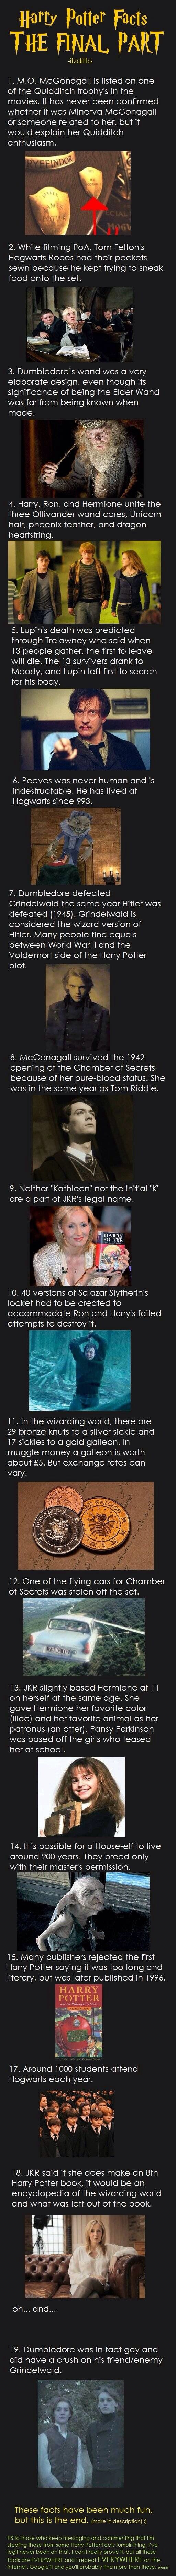 337 best images about harry and ginny on pinterest harry birthday - Harry Potter Facts The Final Part Was Going To Be 19 Facts For The 19 Years That Passed But I Seemed To Of Skipped A Number Whoops T Harry Potter Facts